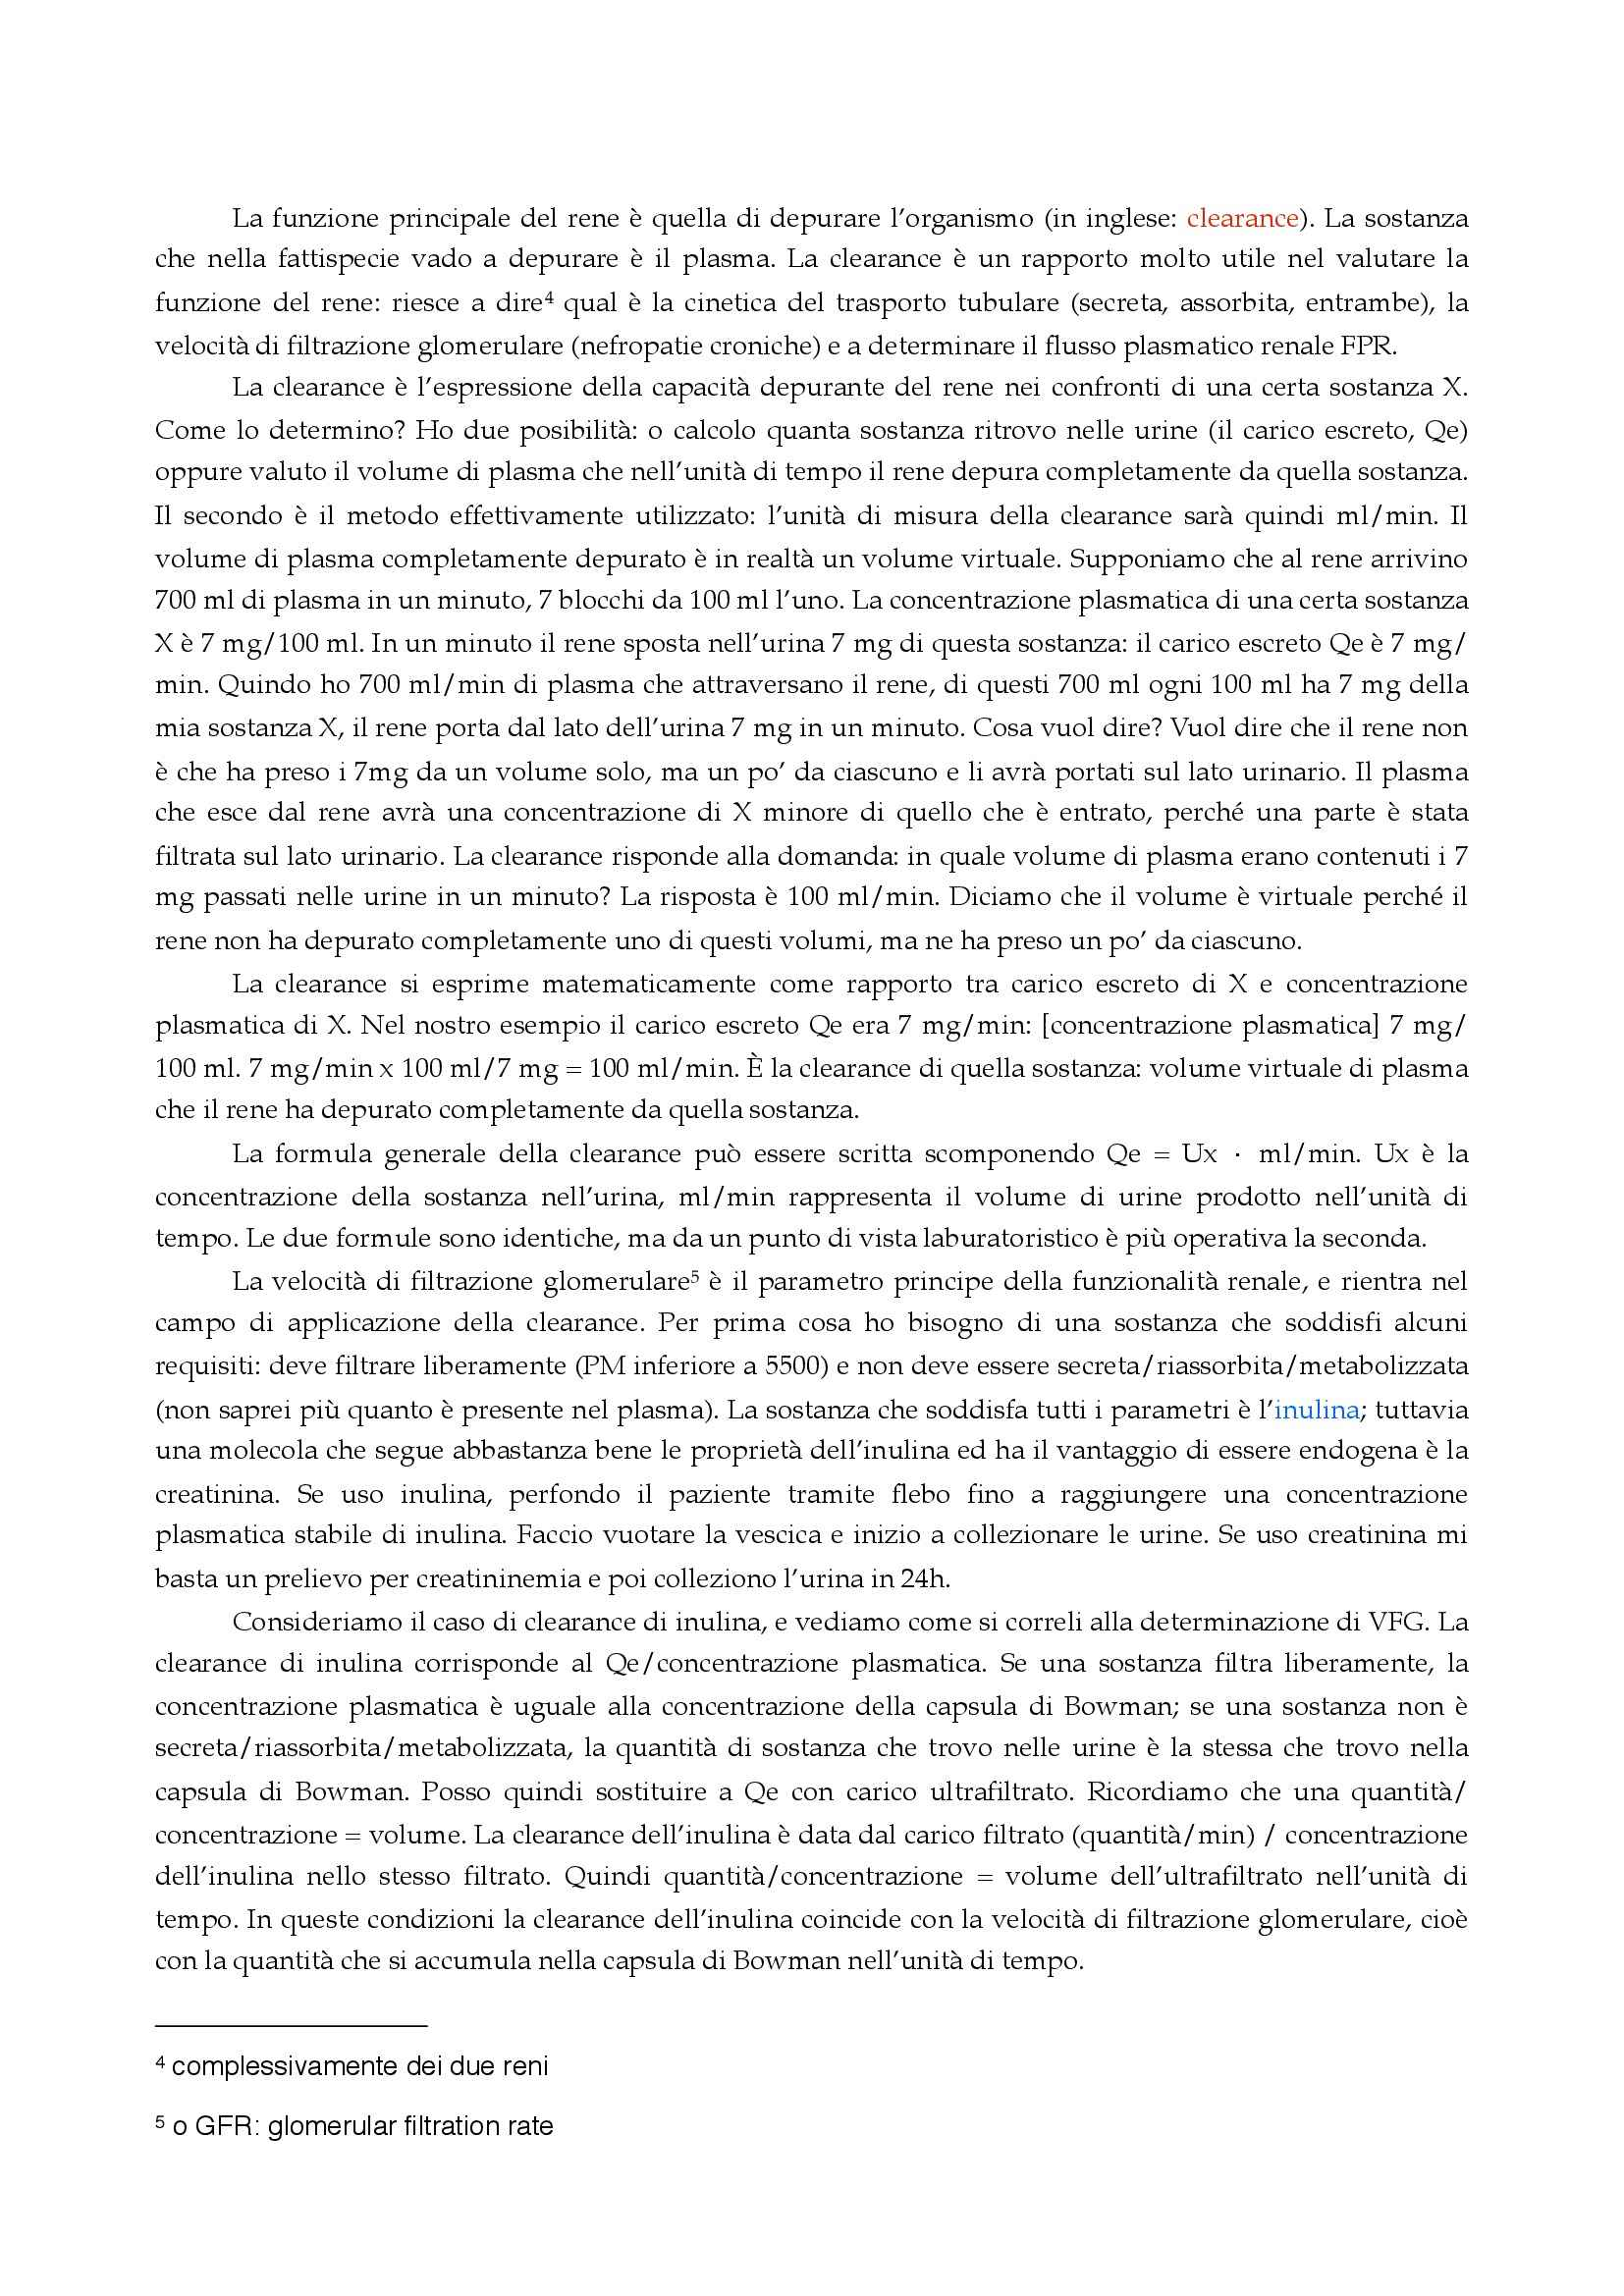 Fisiologia - fisiologia renale Pag. 36